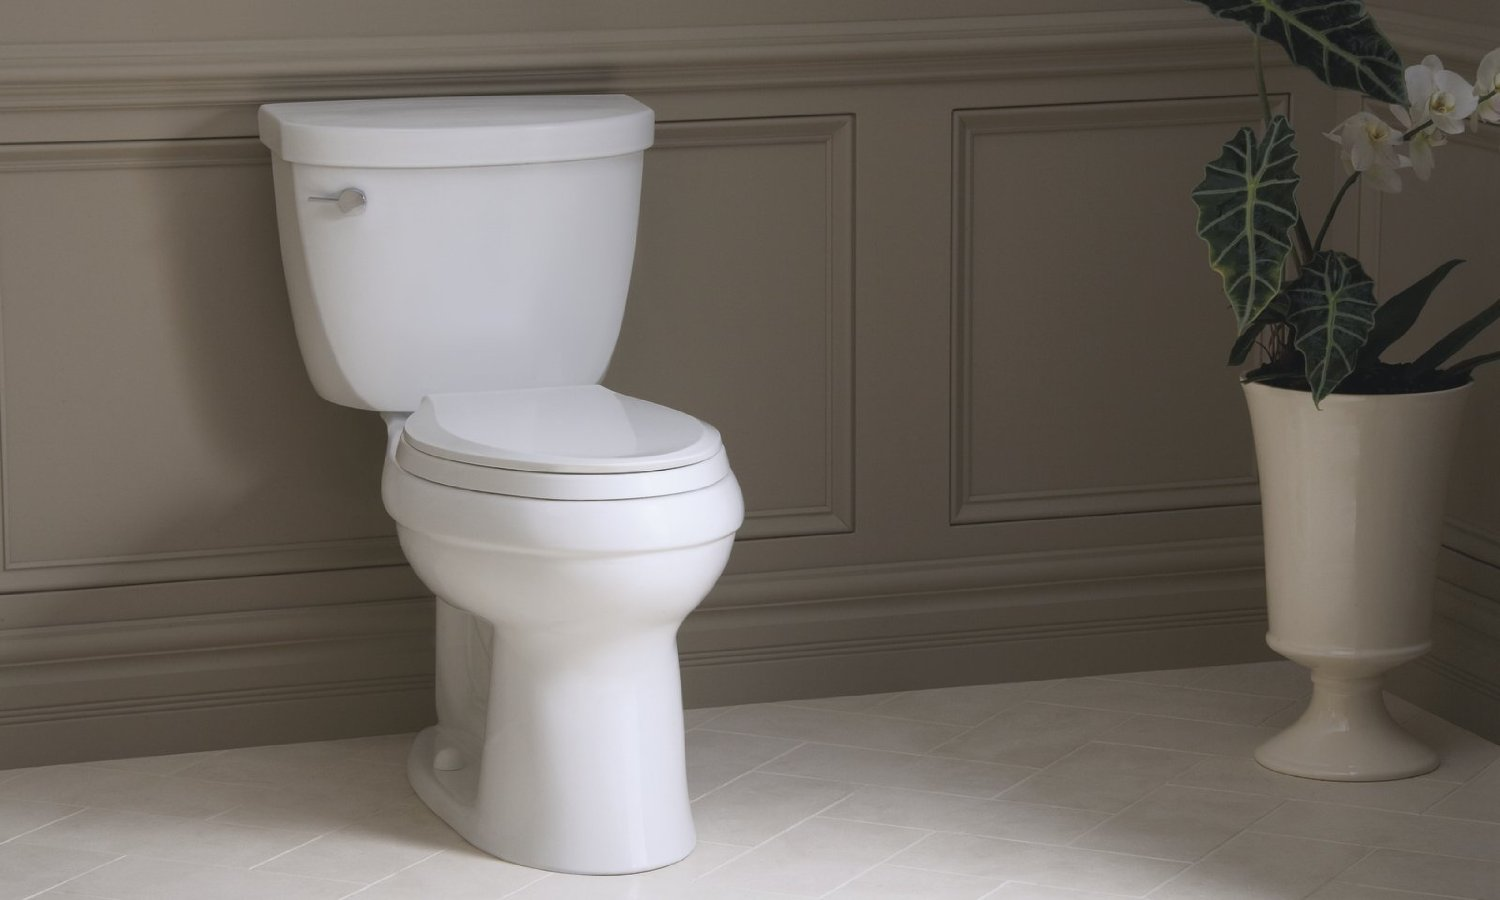 Kohler Santa Rosa >> Kohler Cimarron Comfort Height Toilet Review | Toilet ...